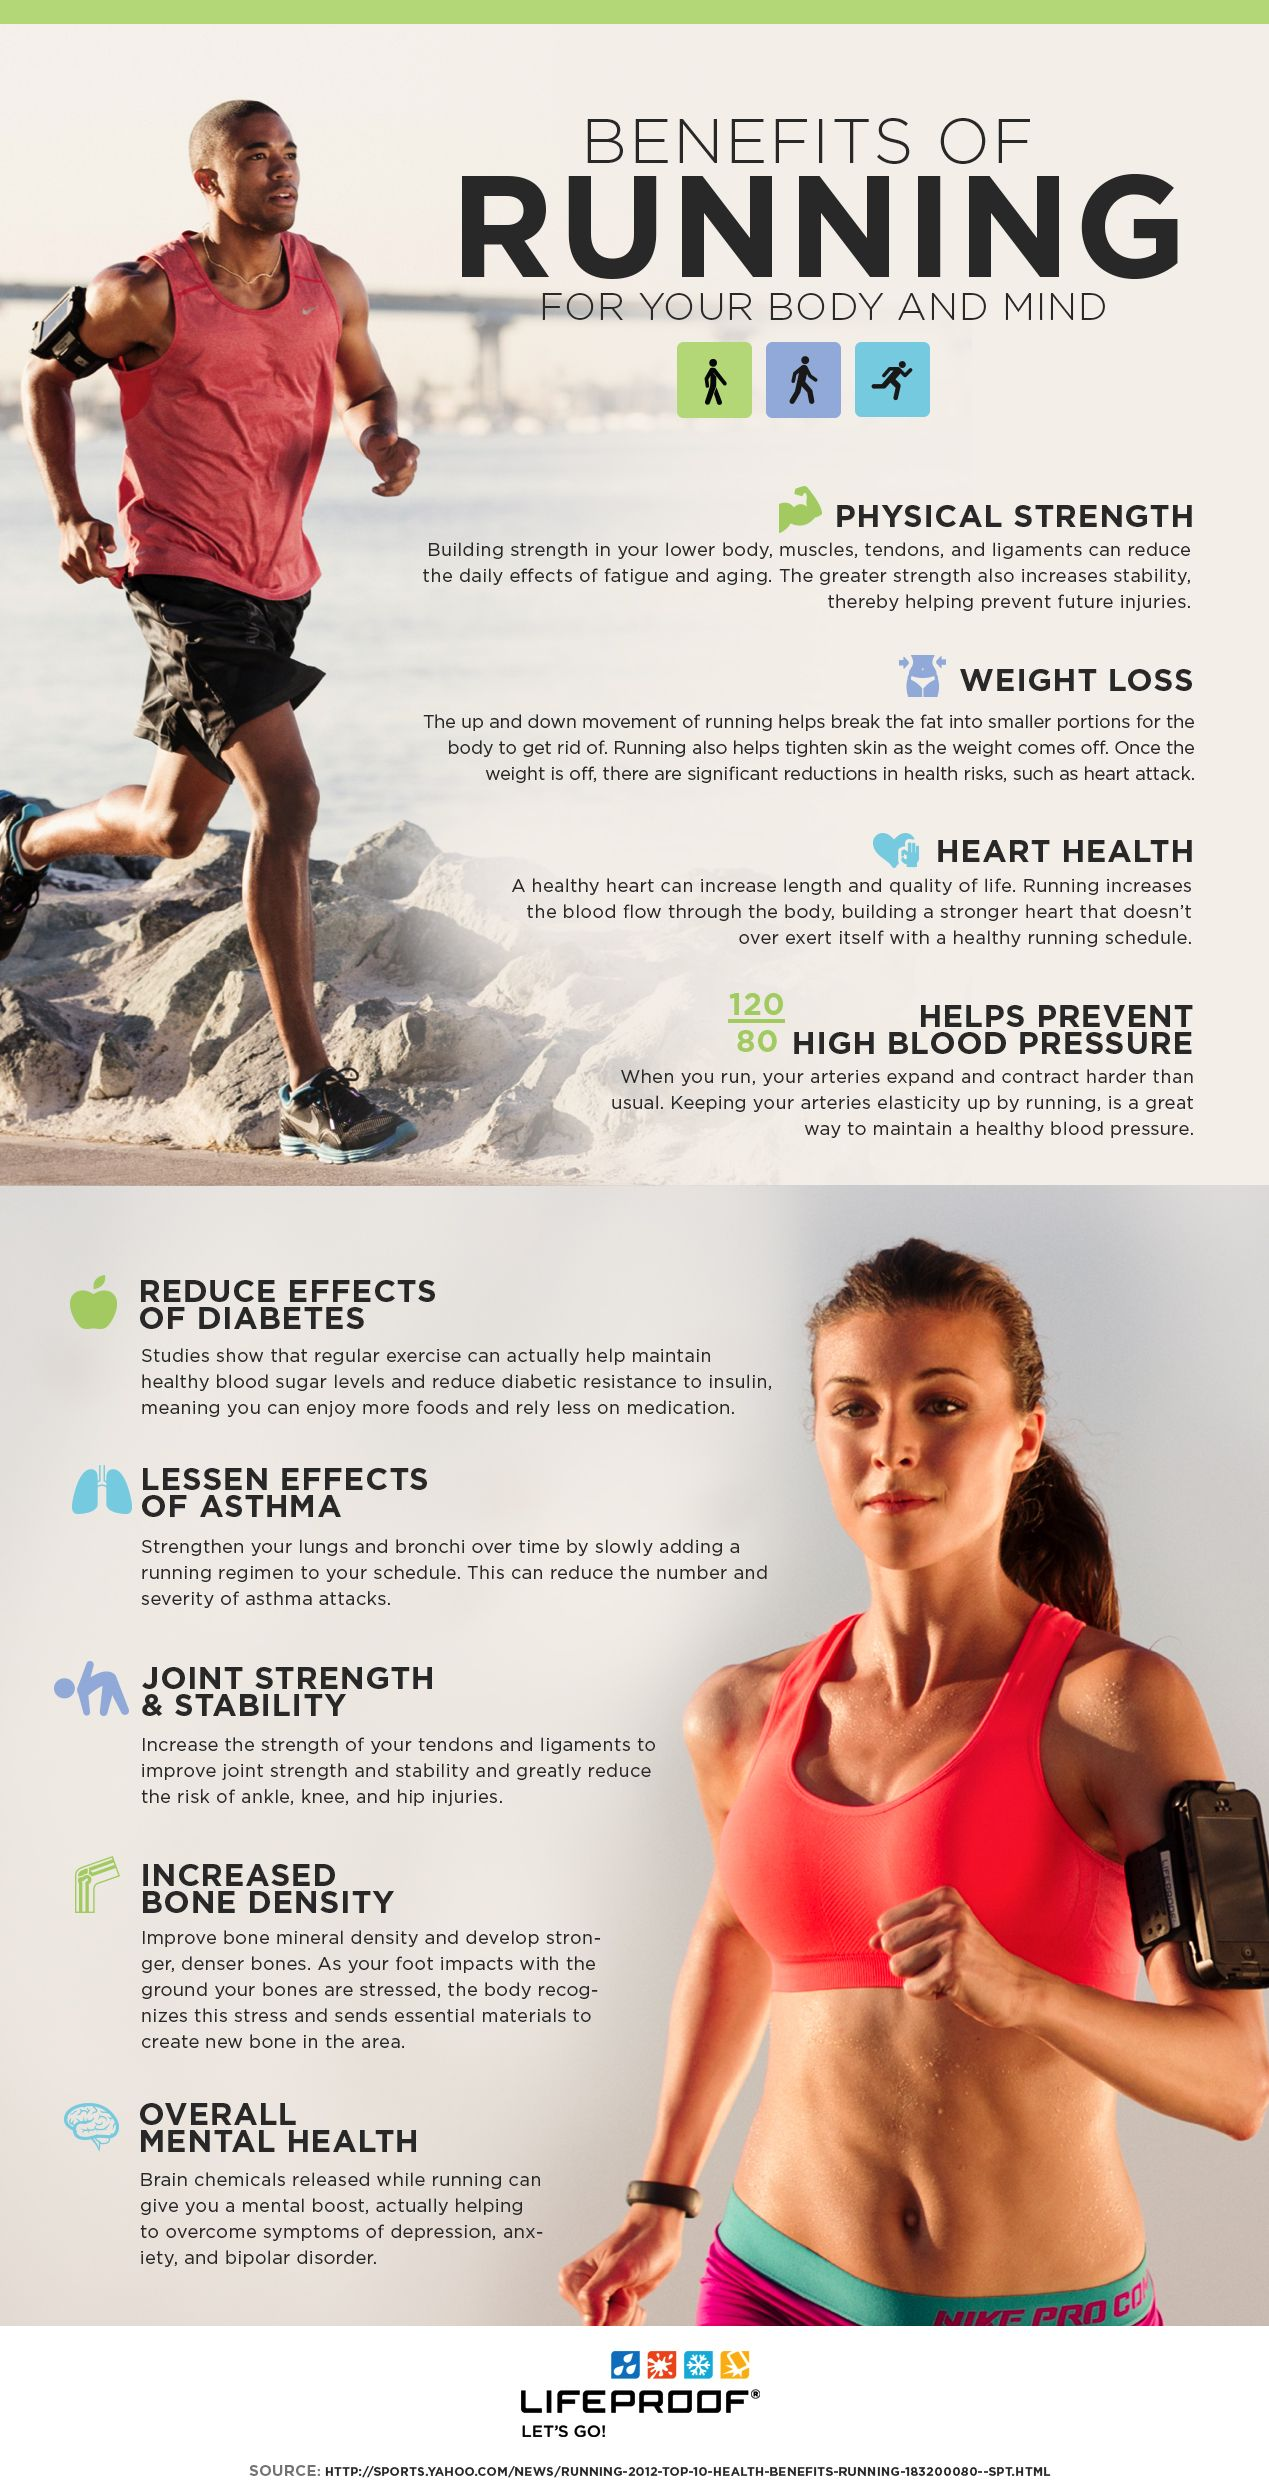 benefits of running There are several mental benefits of jogging and running that some people are not knowledgeable of.